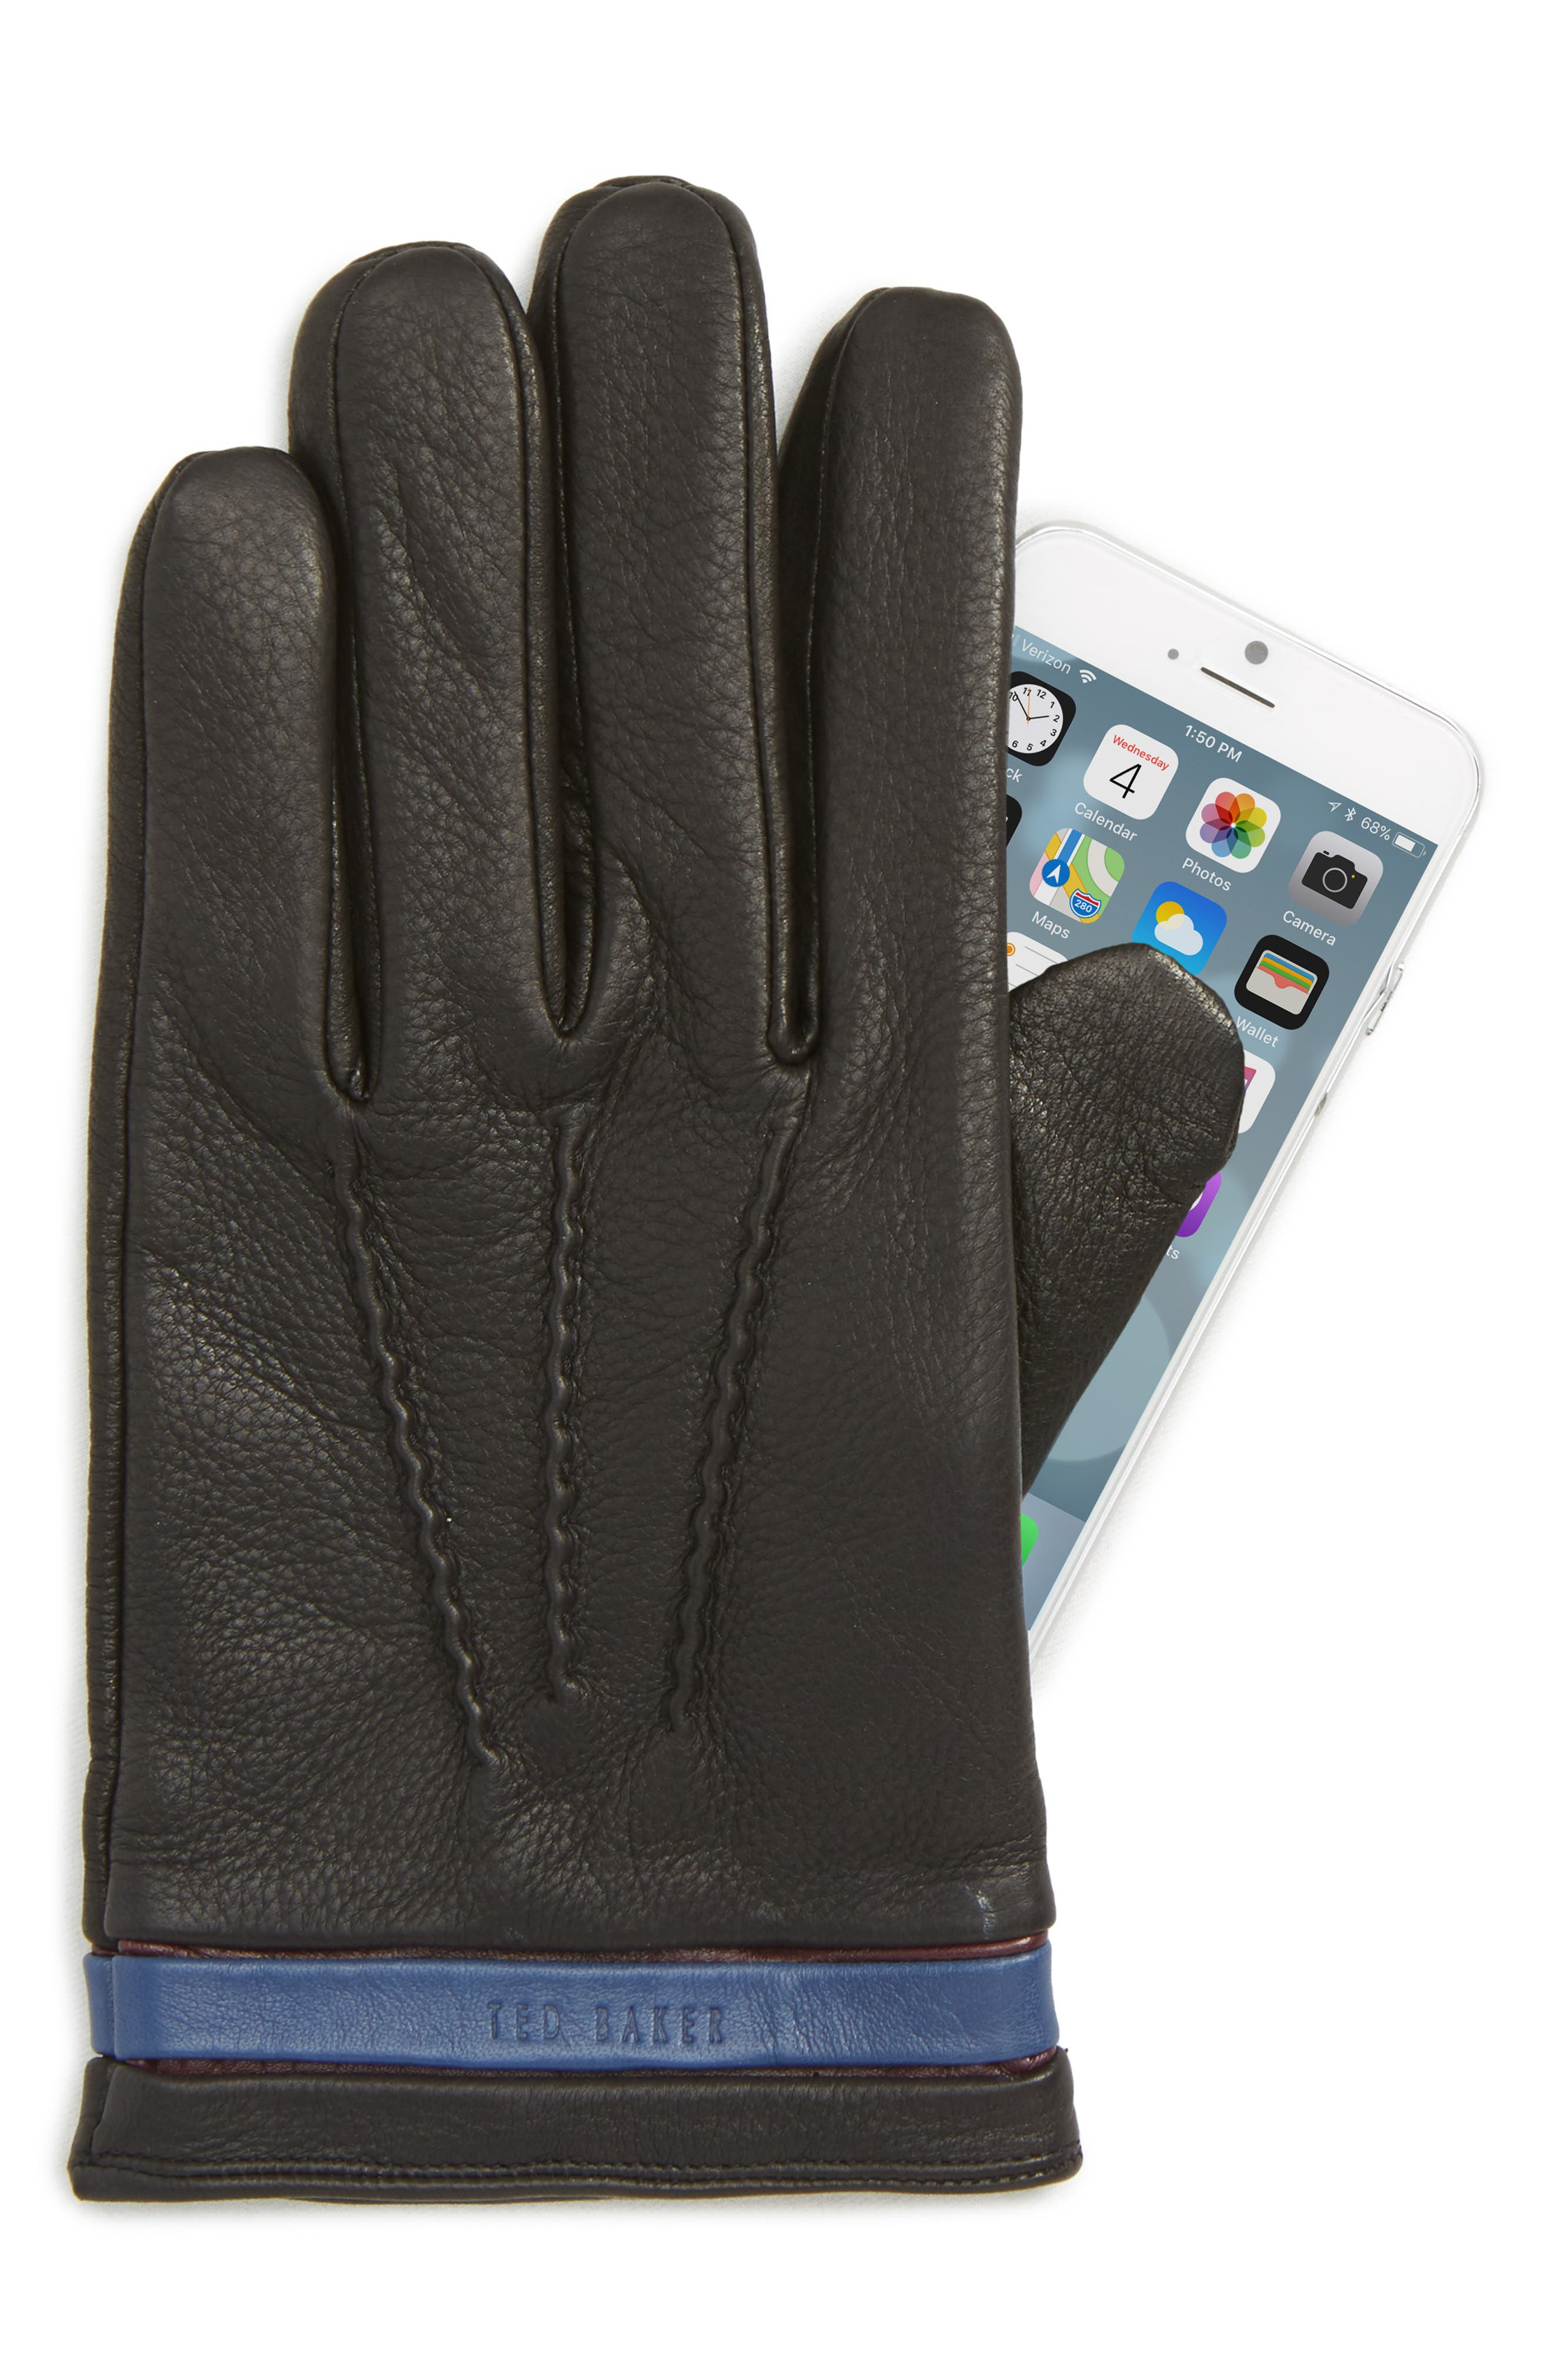 TED BAKER LONDON,                             Tipped Leather Touchscreen Gloves,                             Alternate thumbnail 2, color,                             BLACK